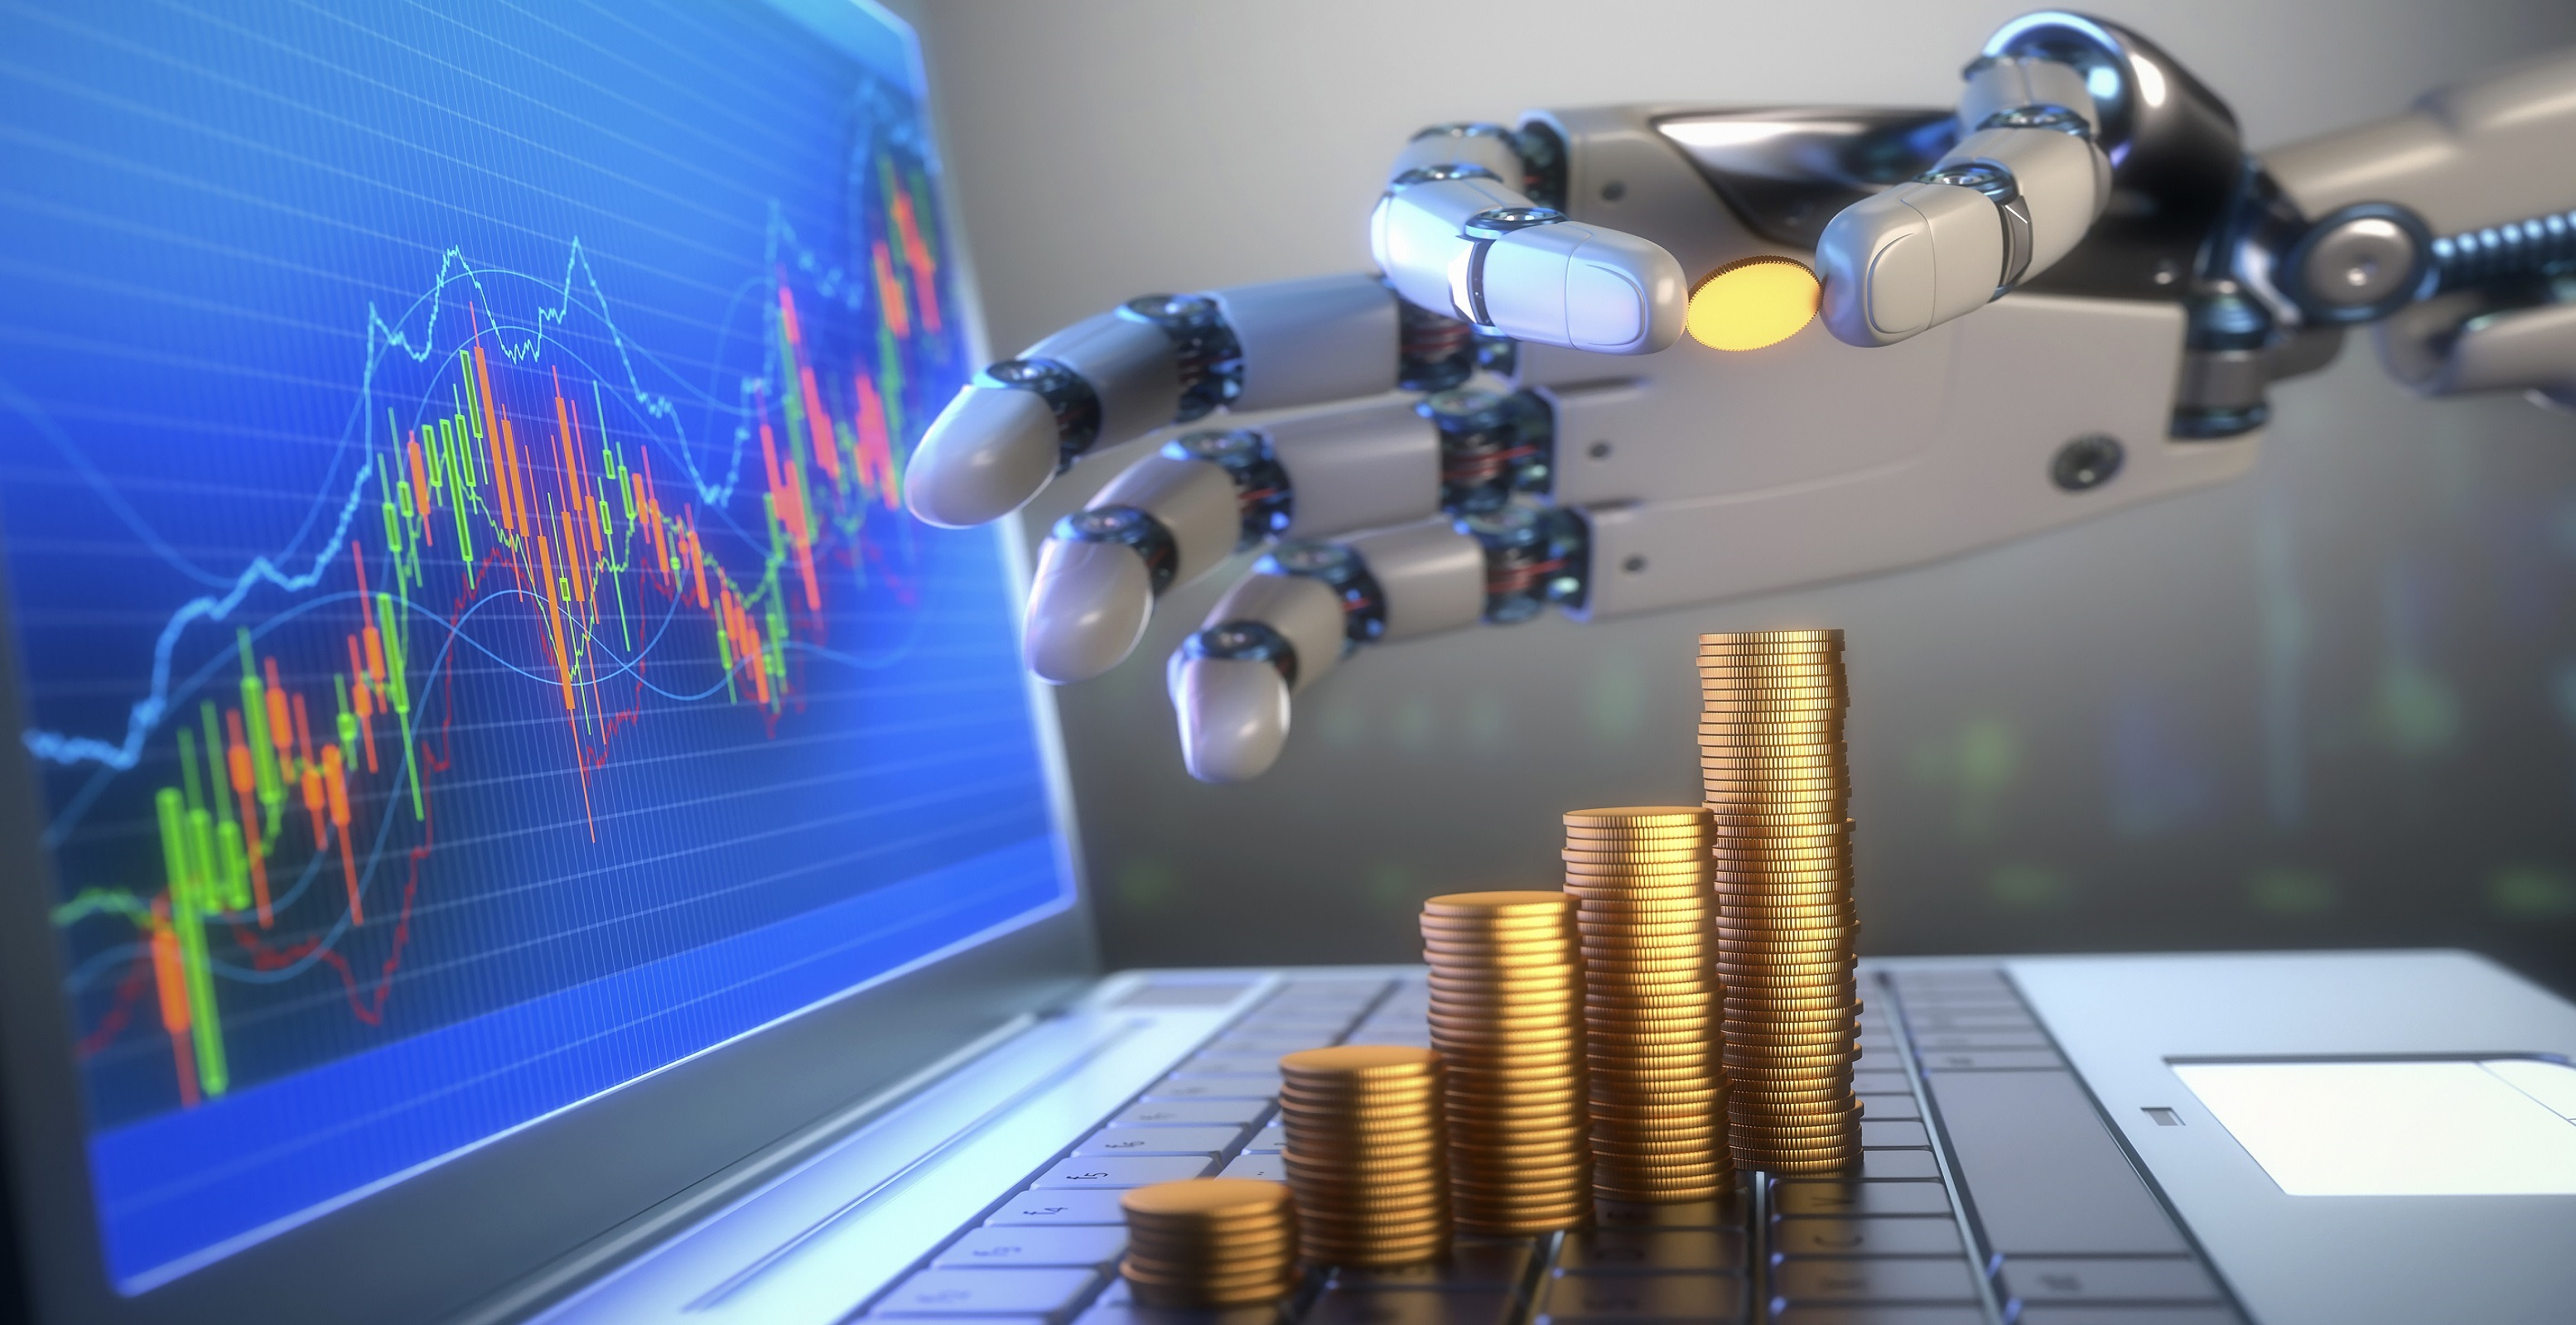 Coins and robotic hand, illustration